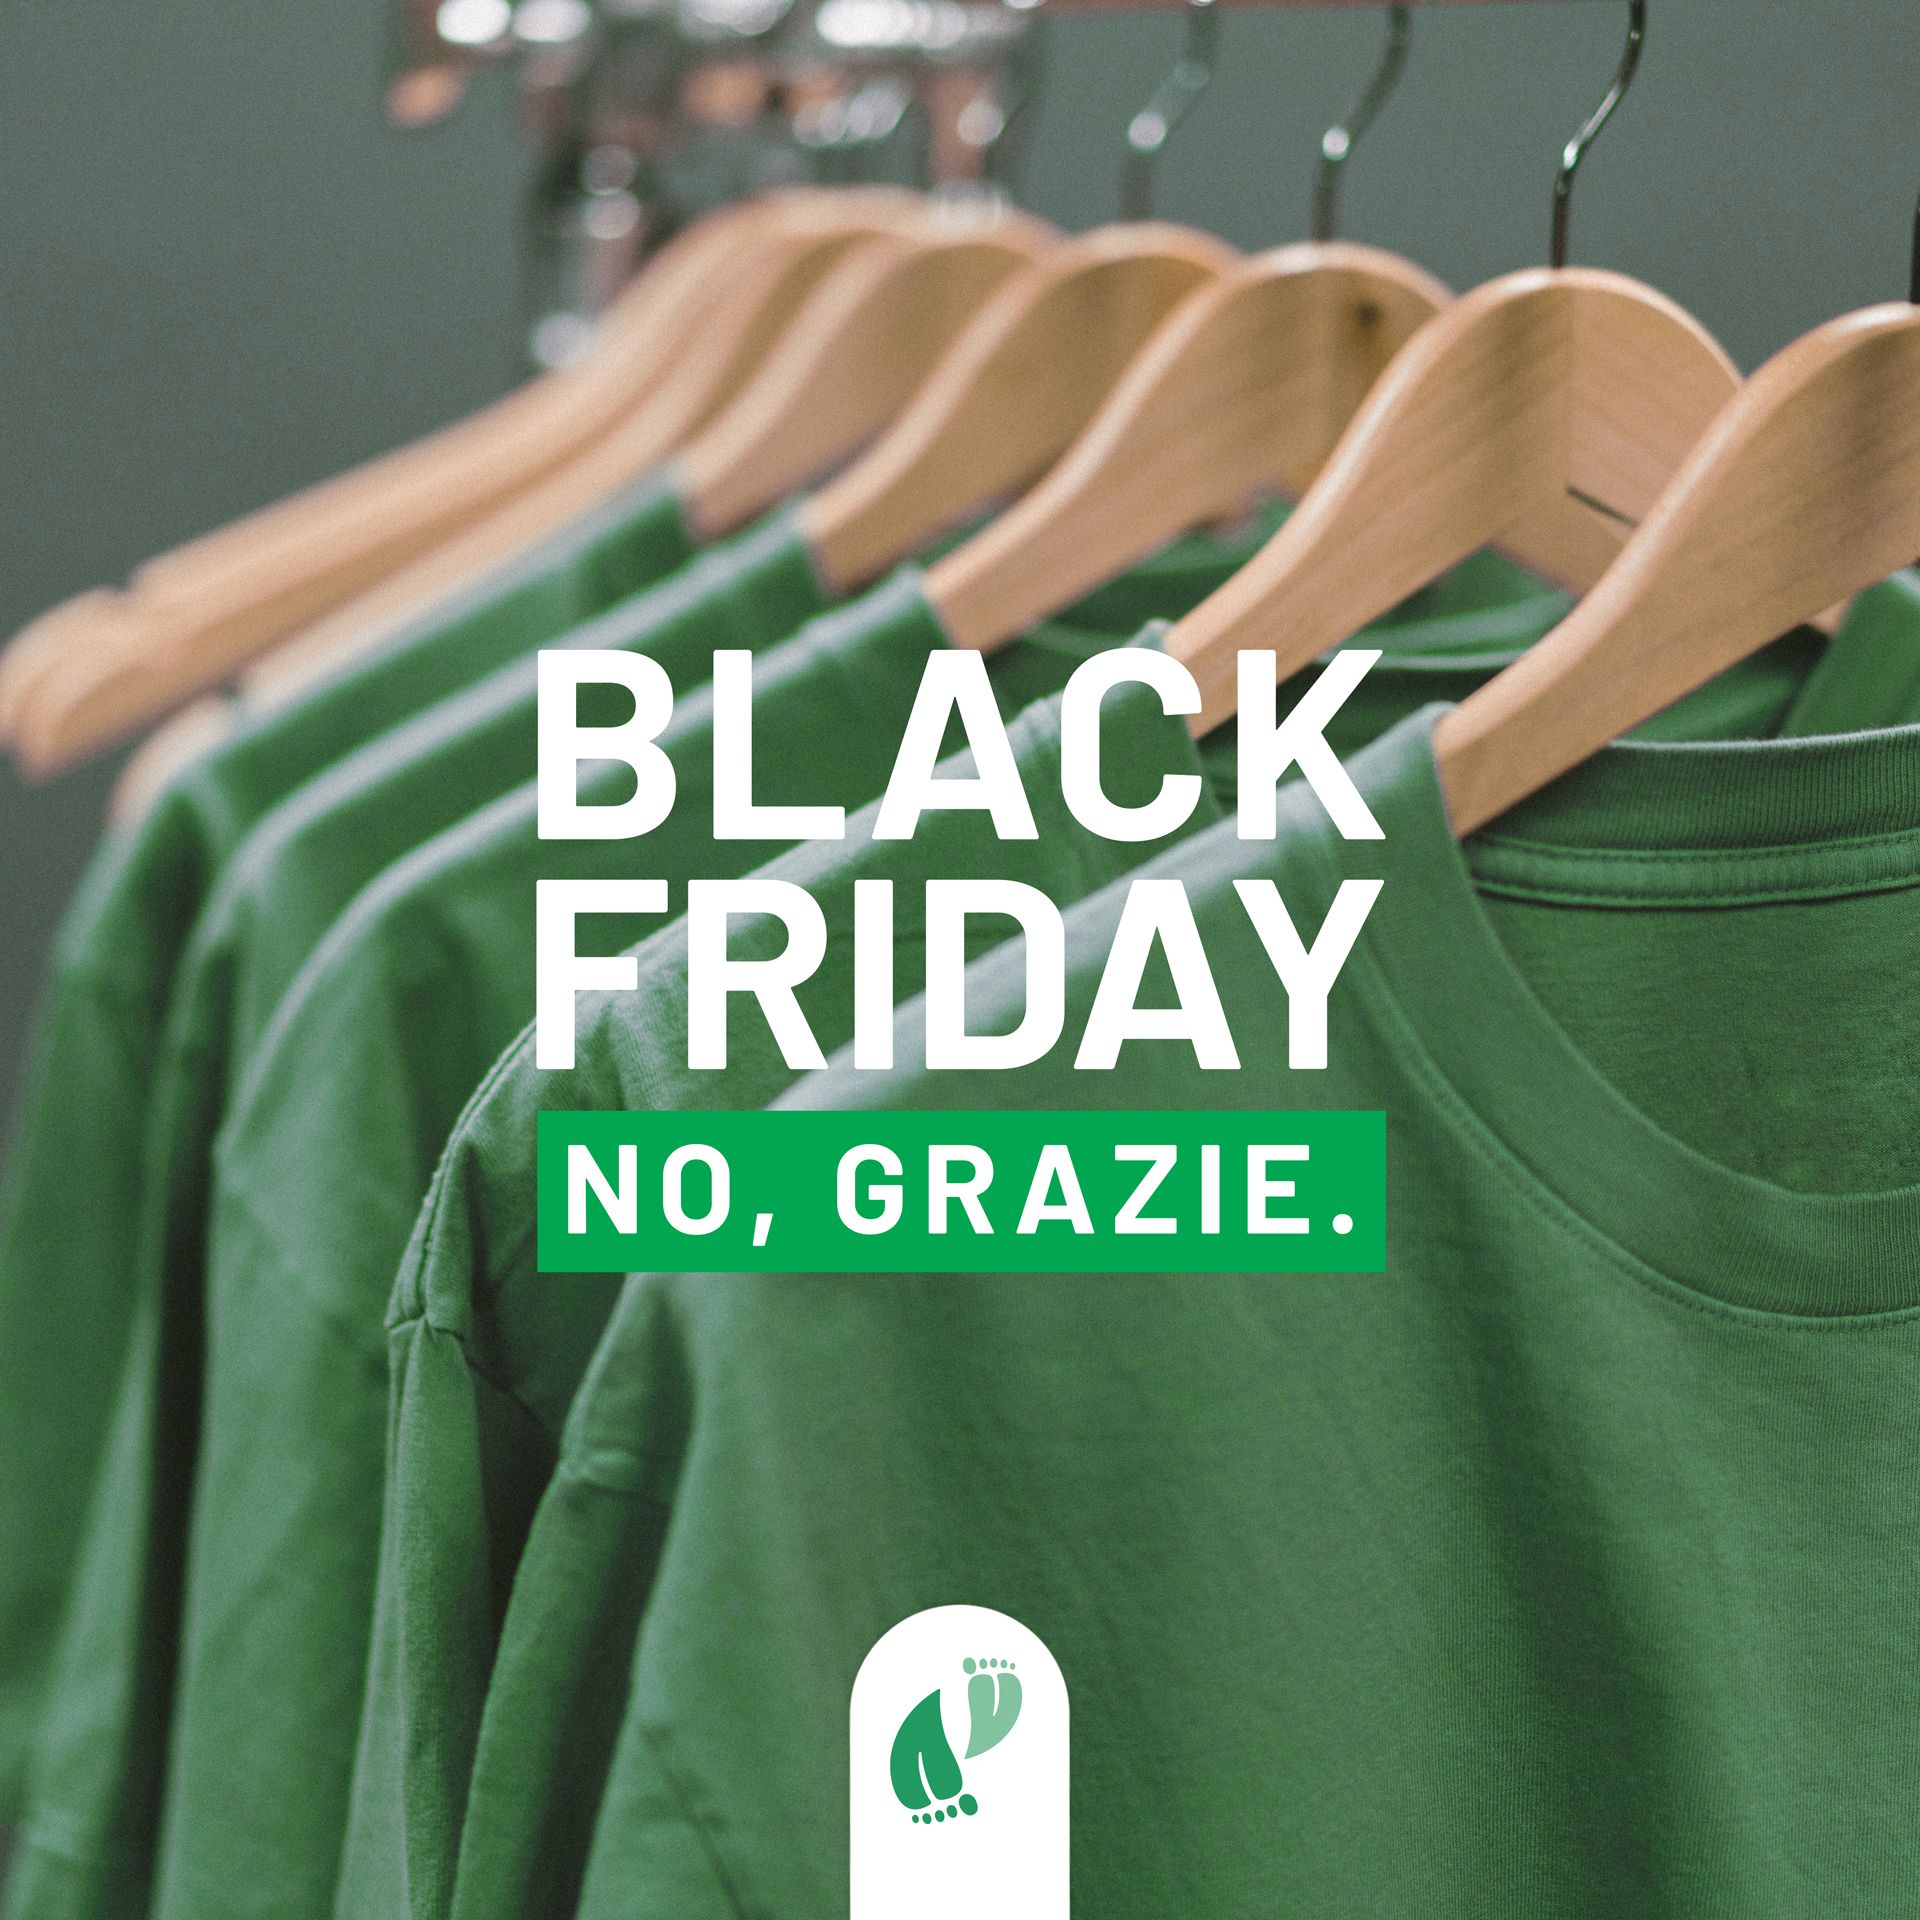 Black Friday: No, grazie - Green Friday #magariungiorno